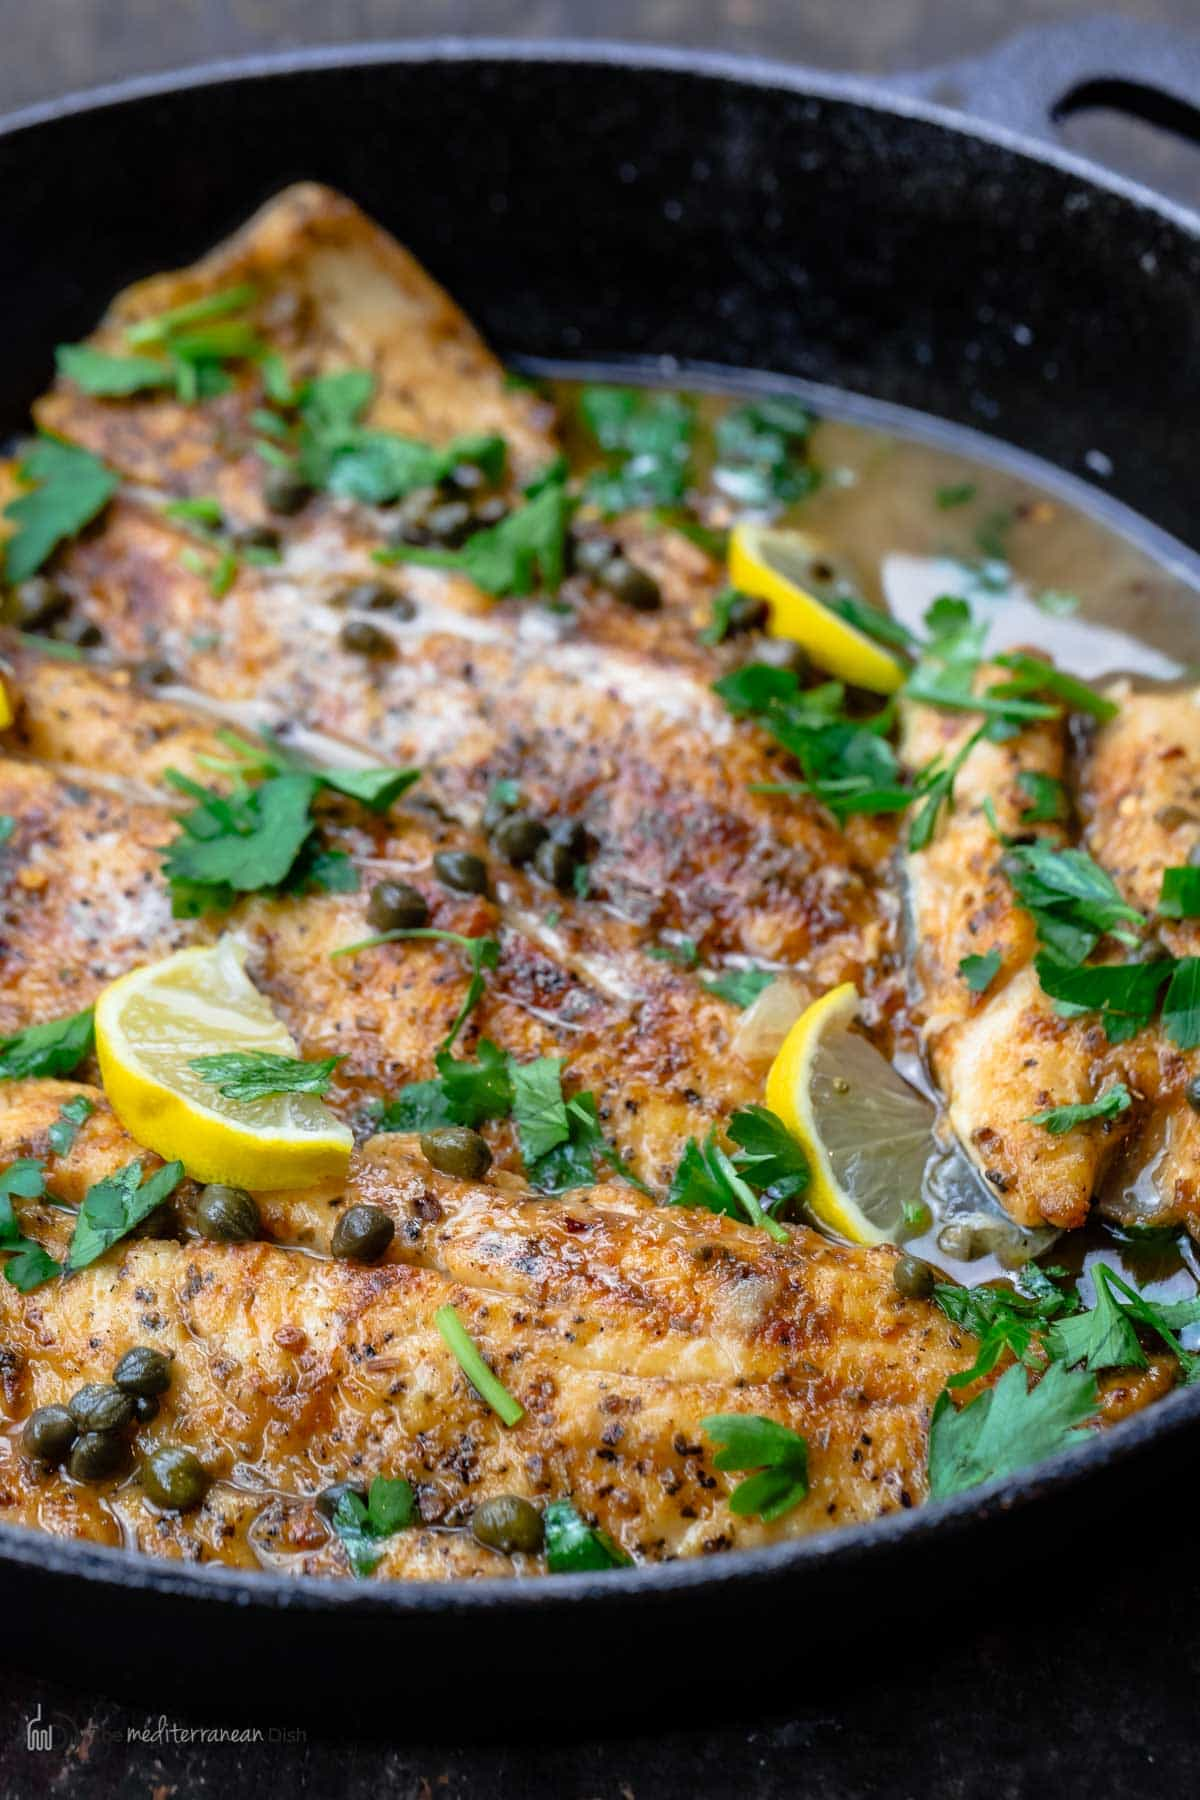 A skillet of fish piccata topped with parsley